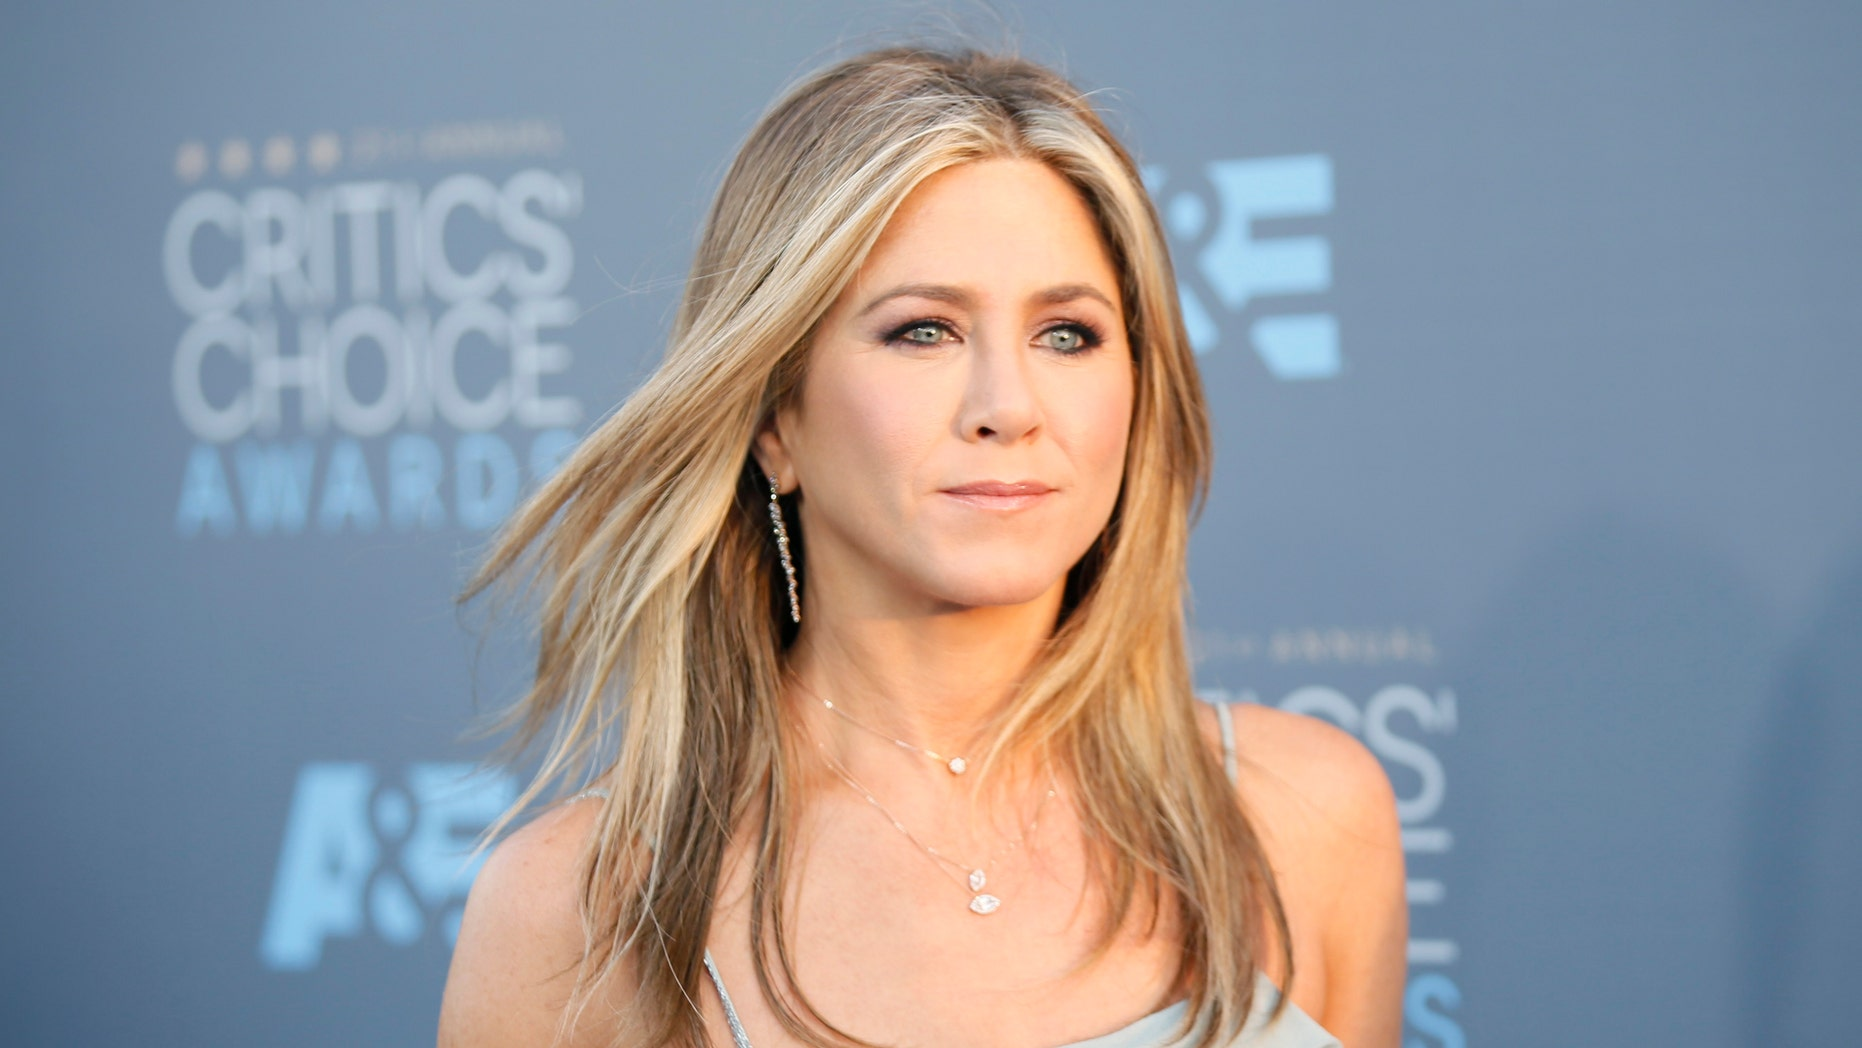 Actress Jennifer Aniston arrives at the 21st Annual Critics' Choice Awards in Santa Monica, California January 17, 2016.  REUTERS/Danny Moloshok - RTX22T1W